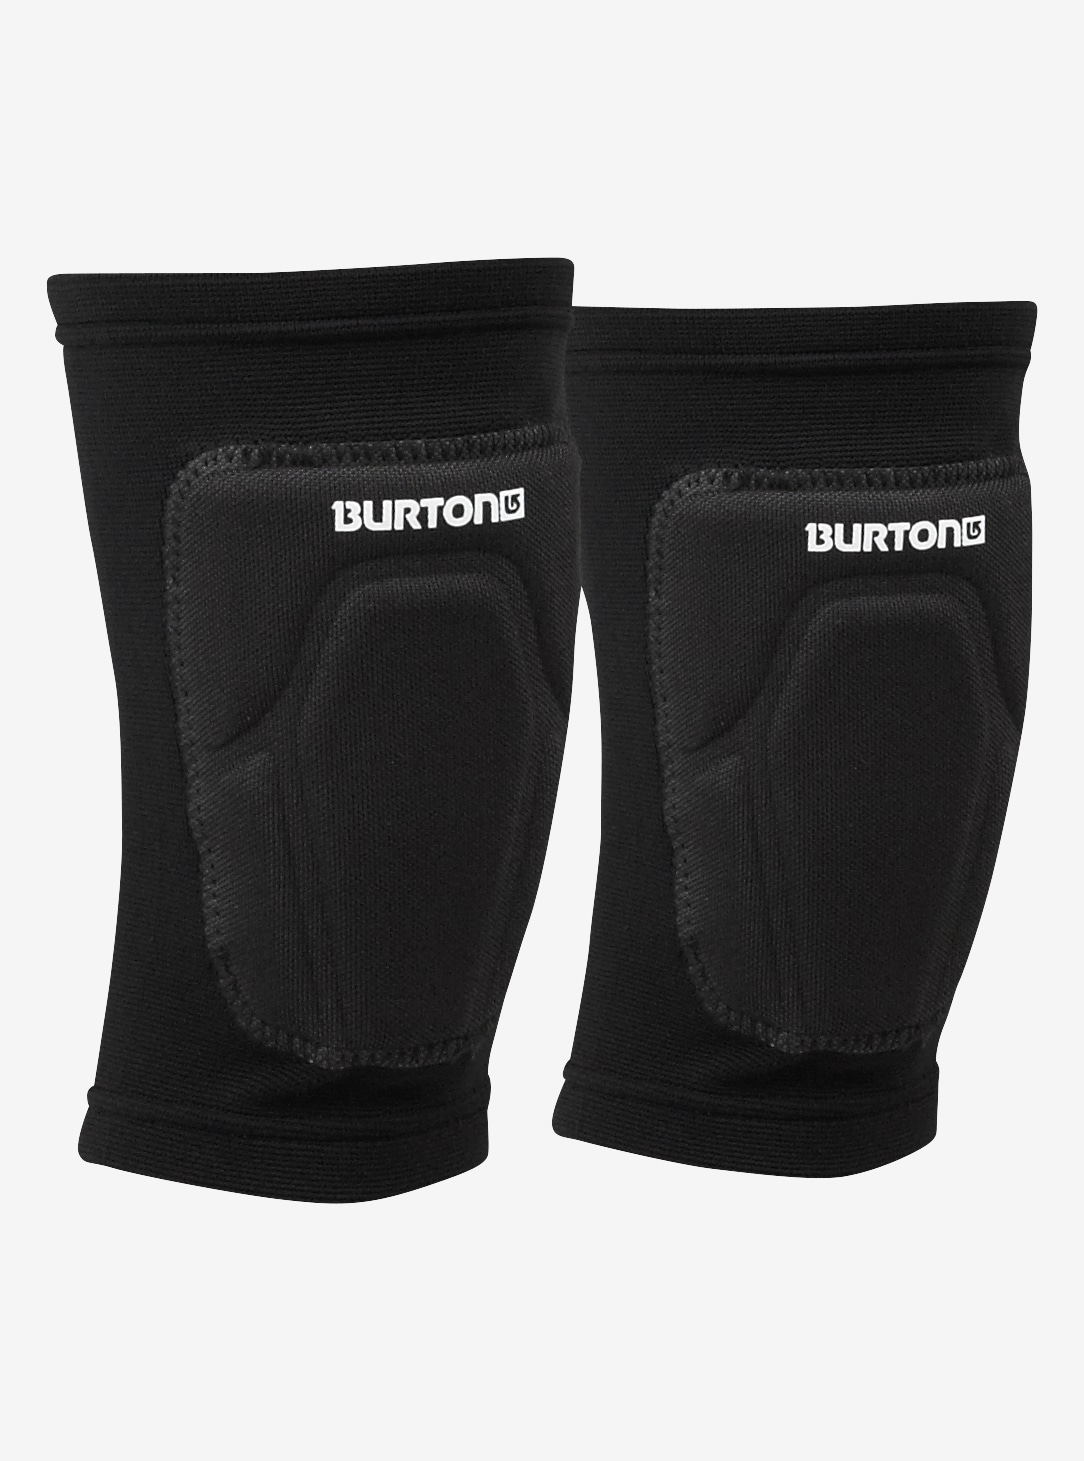 Burton Basic Knee Pad shown in True Black